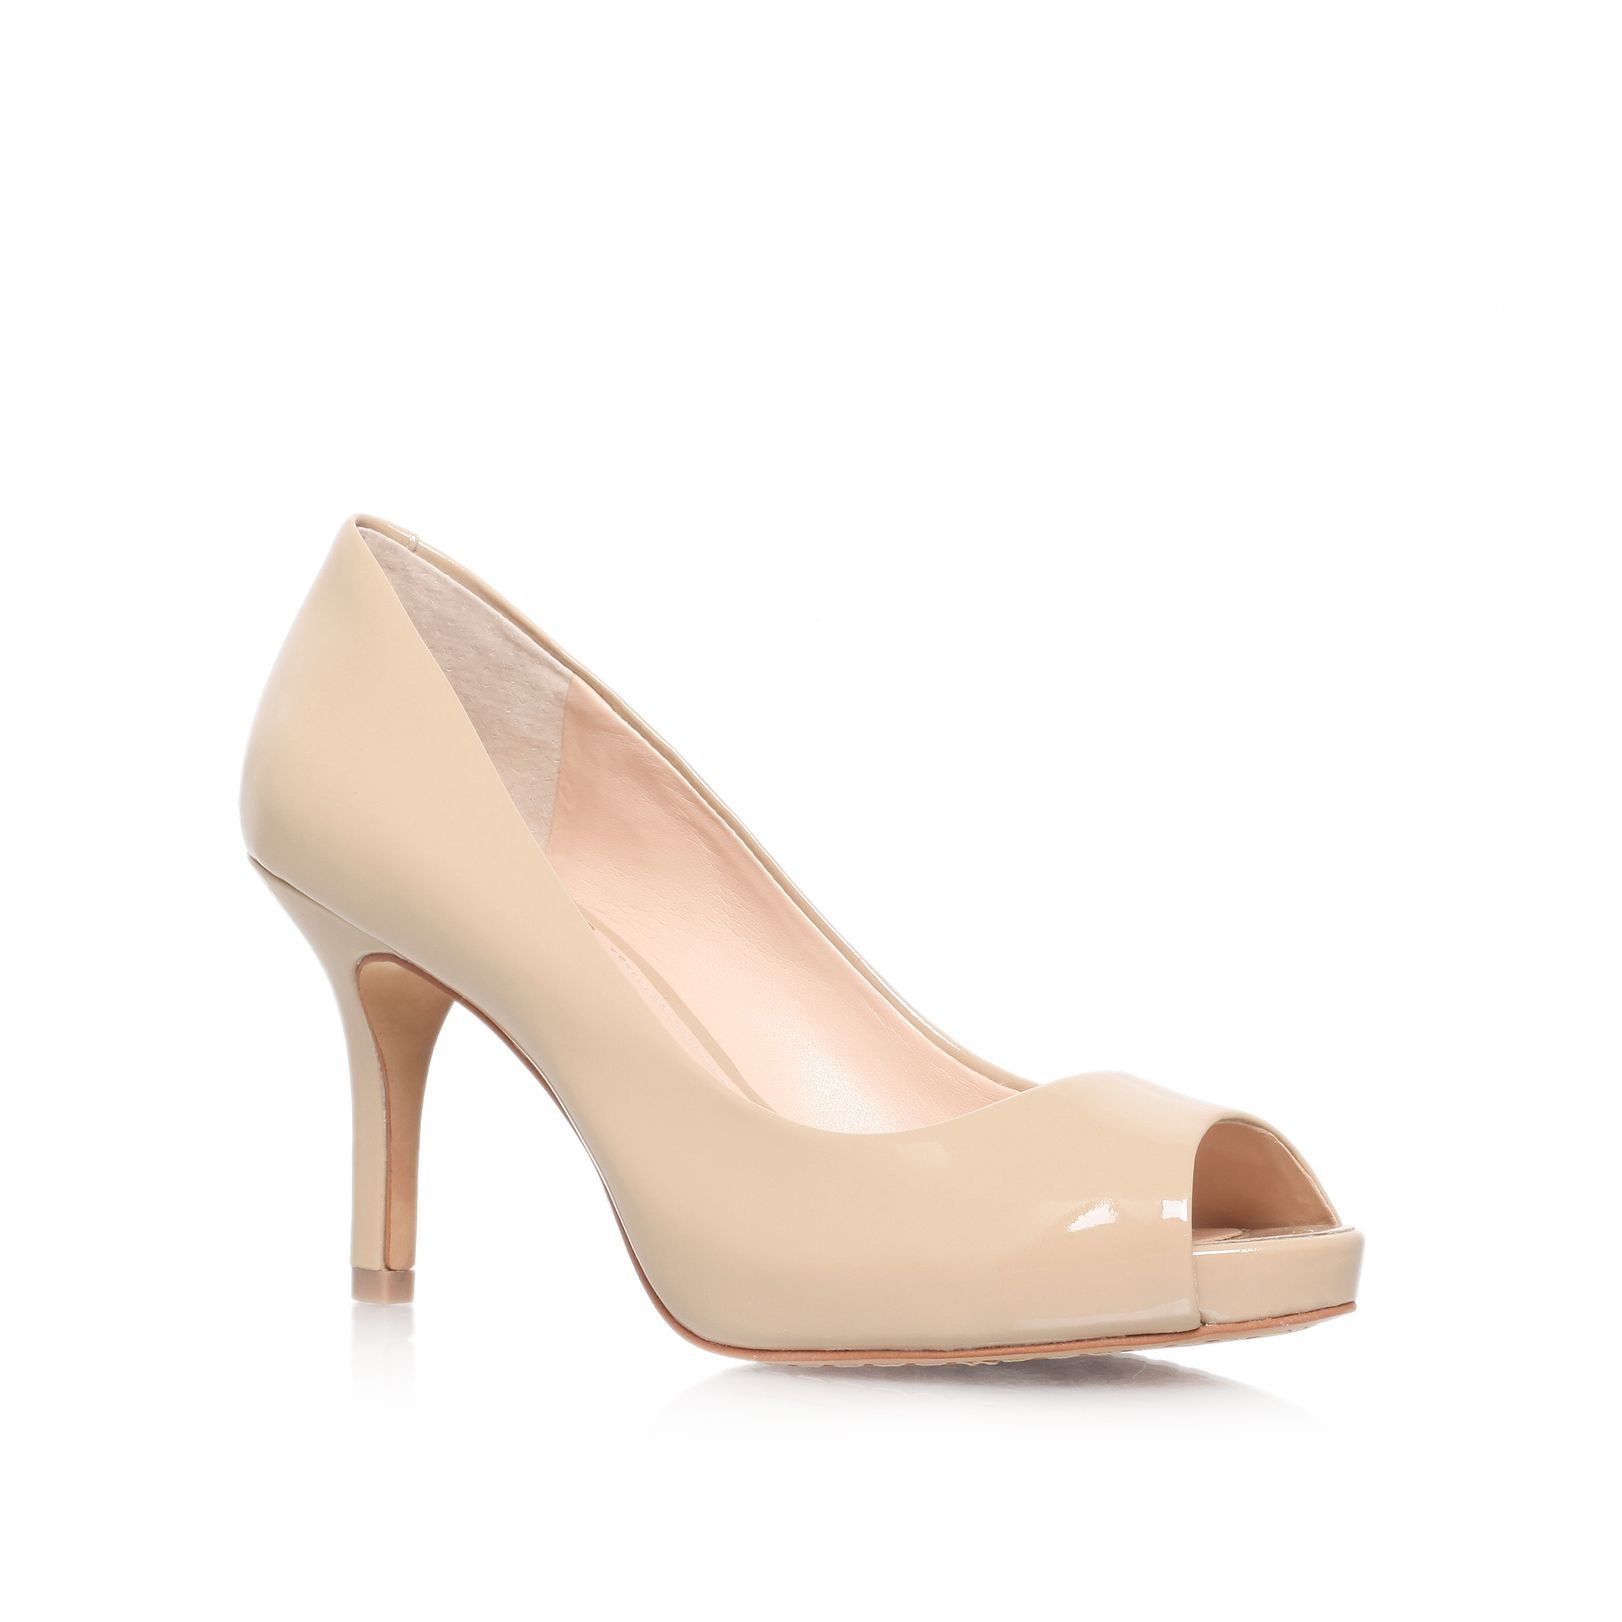 Vince camuto Kiley High Heel Peep Toe Court Shoes in Natural | Lyst